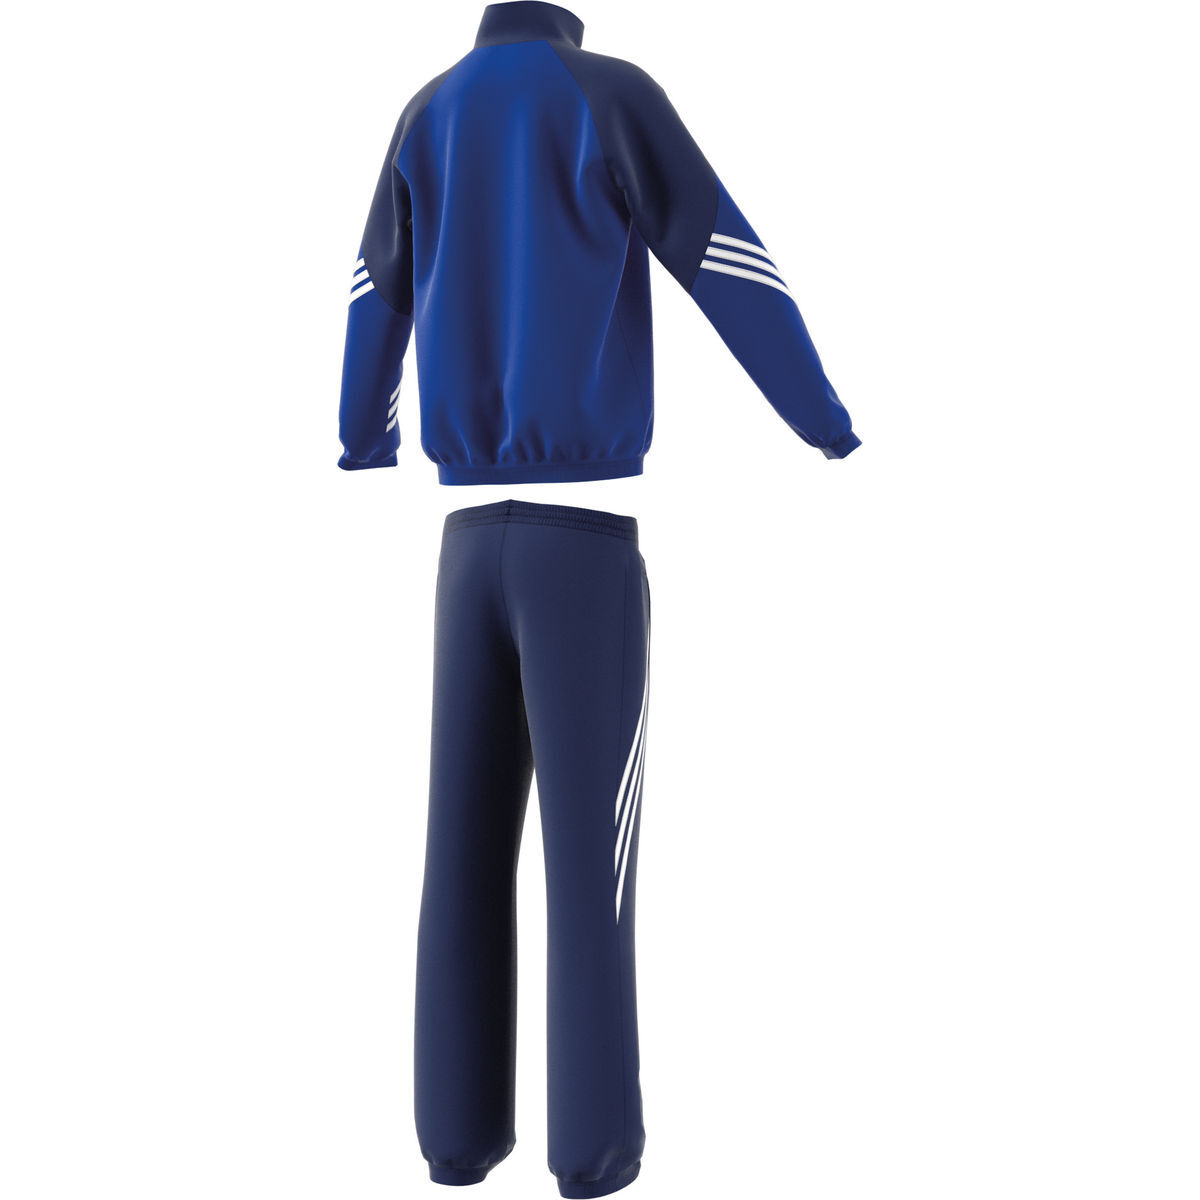 adidas jungen trainingsanzug sereno 14 pre suit blau marine 128 karstadt online shop. Black Bedroom Furniture Sets. Home Design Ideas